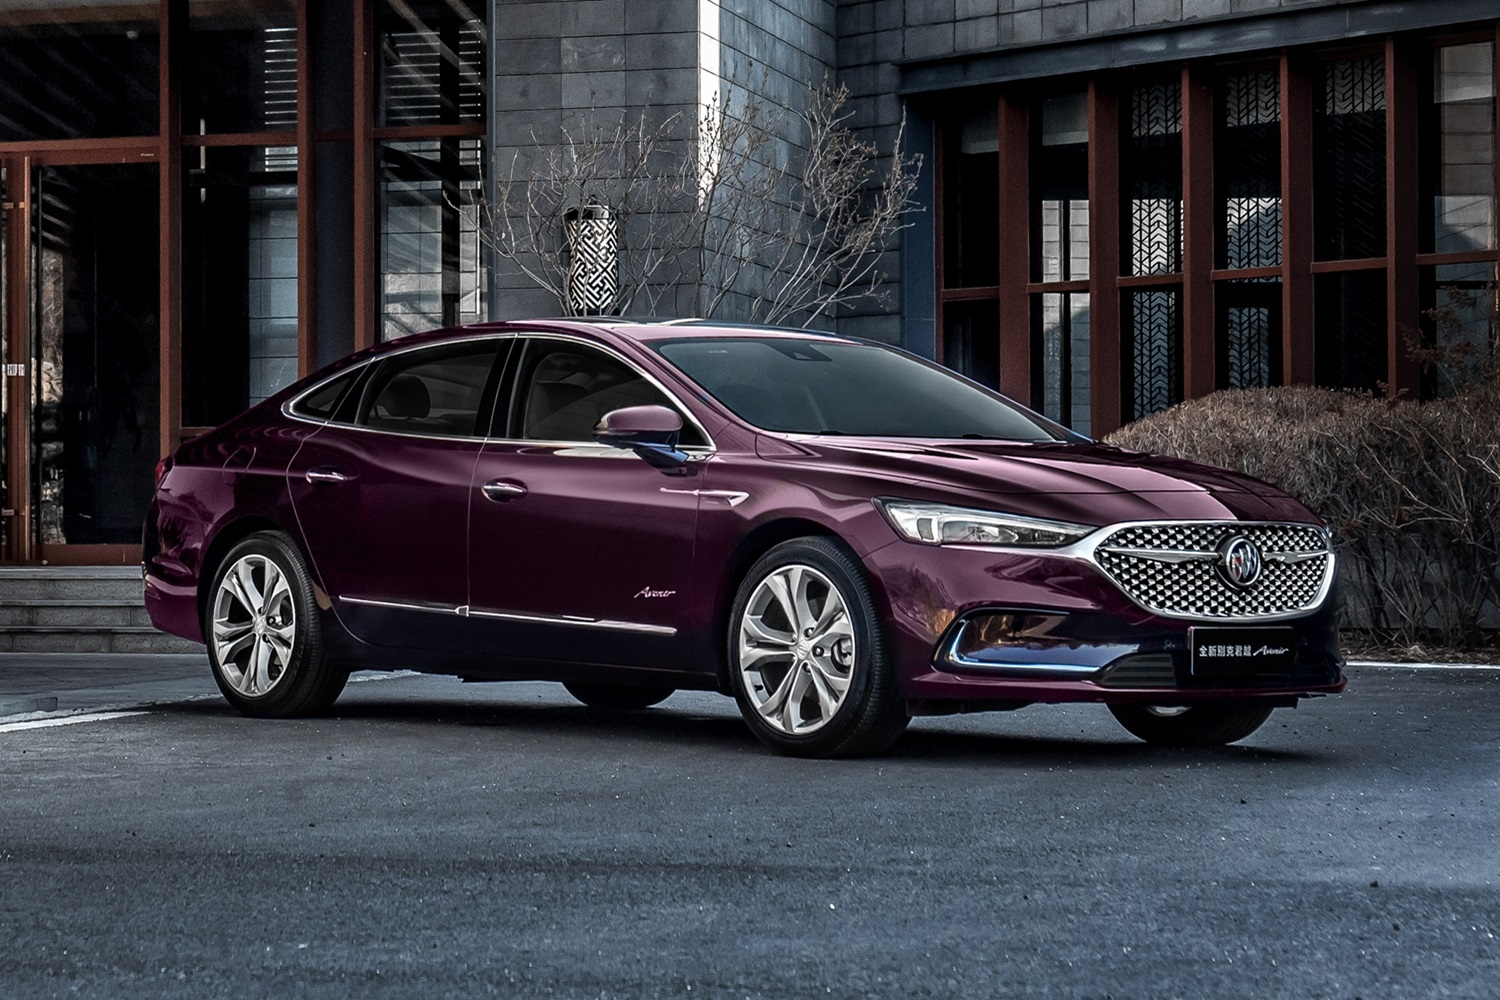 2021 Buick Lacrosse Gets More Refined Than Ever | Gm Authority Where Is The New 2022 Buick Lacrosse Made